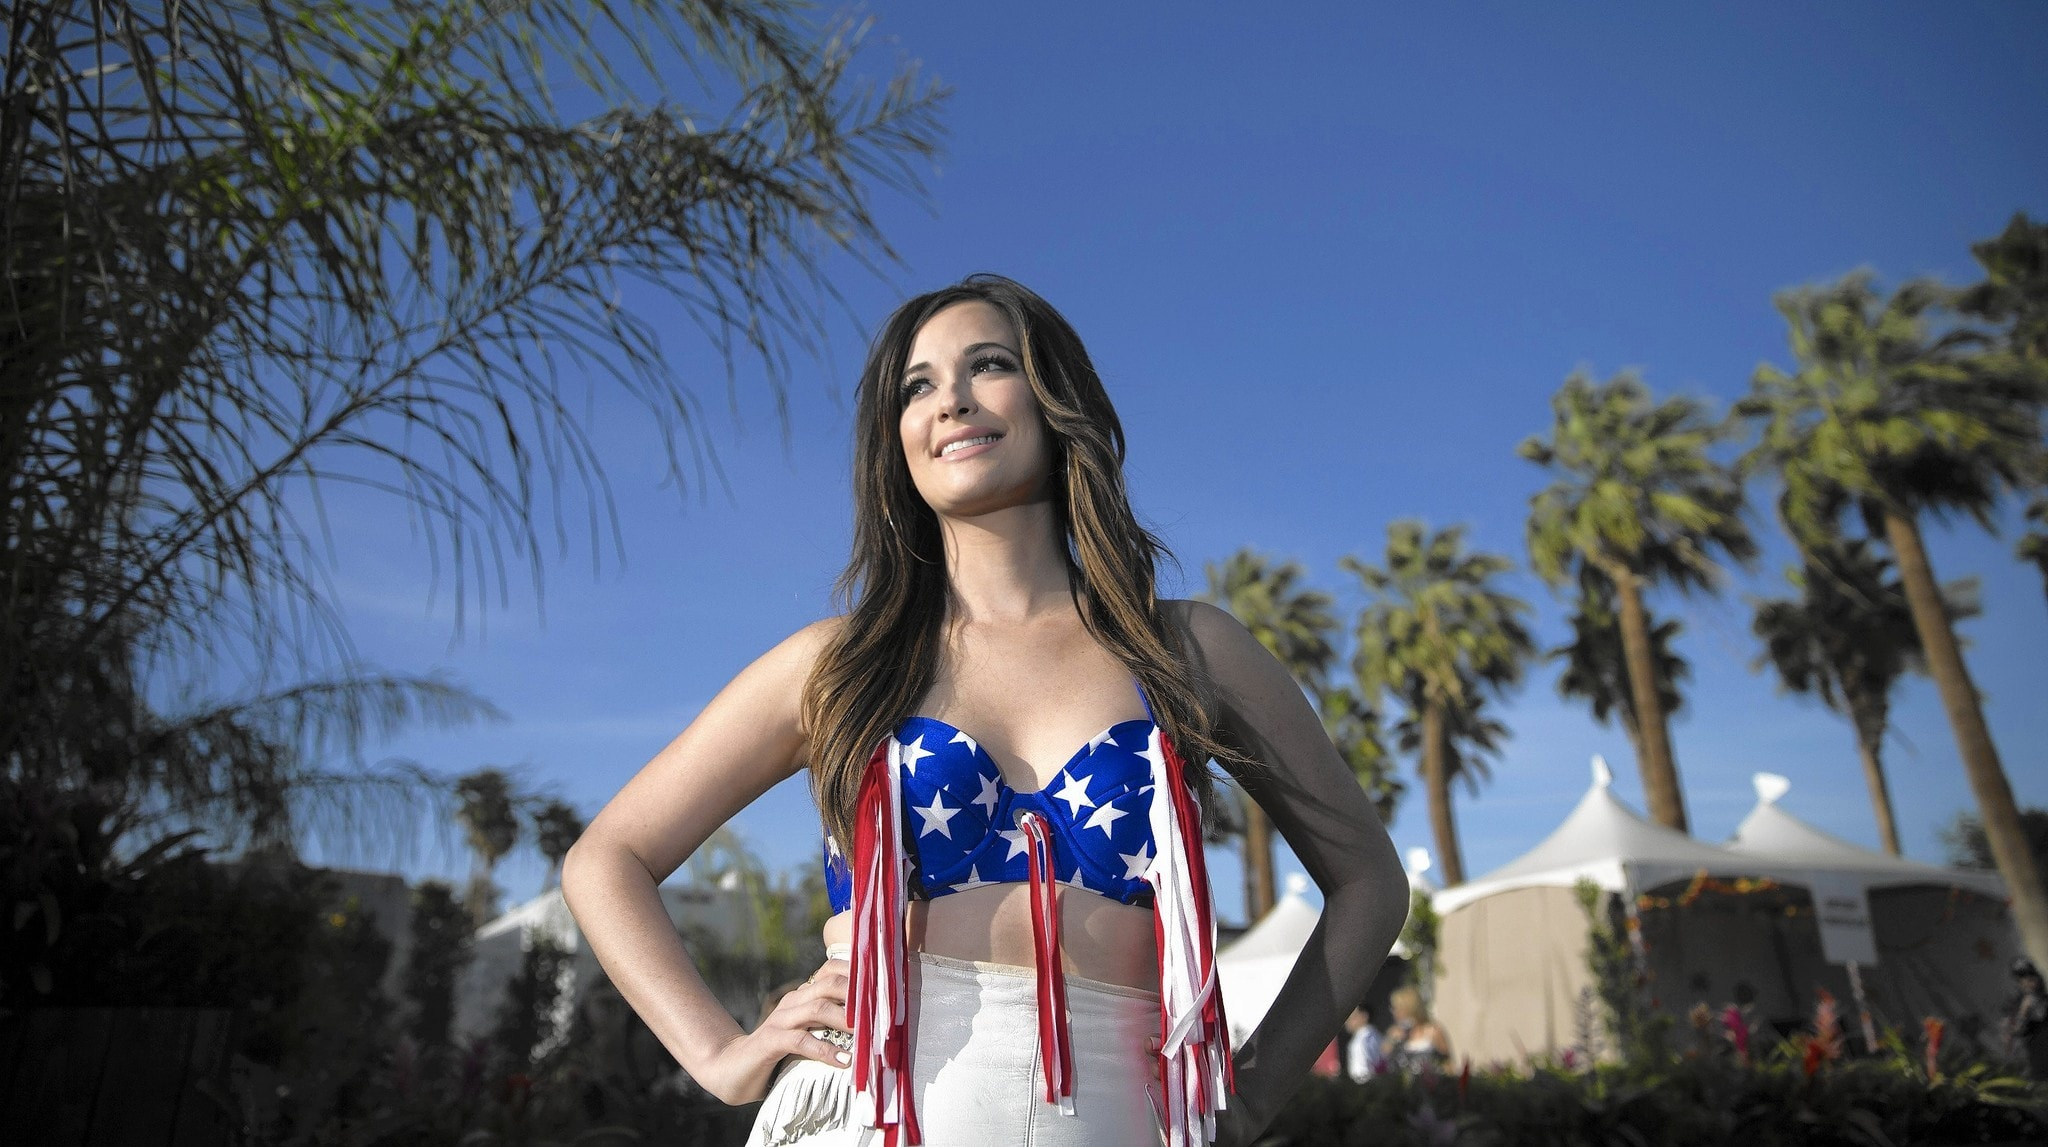 Kacey Musgraves Backgrounds